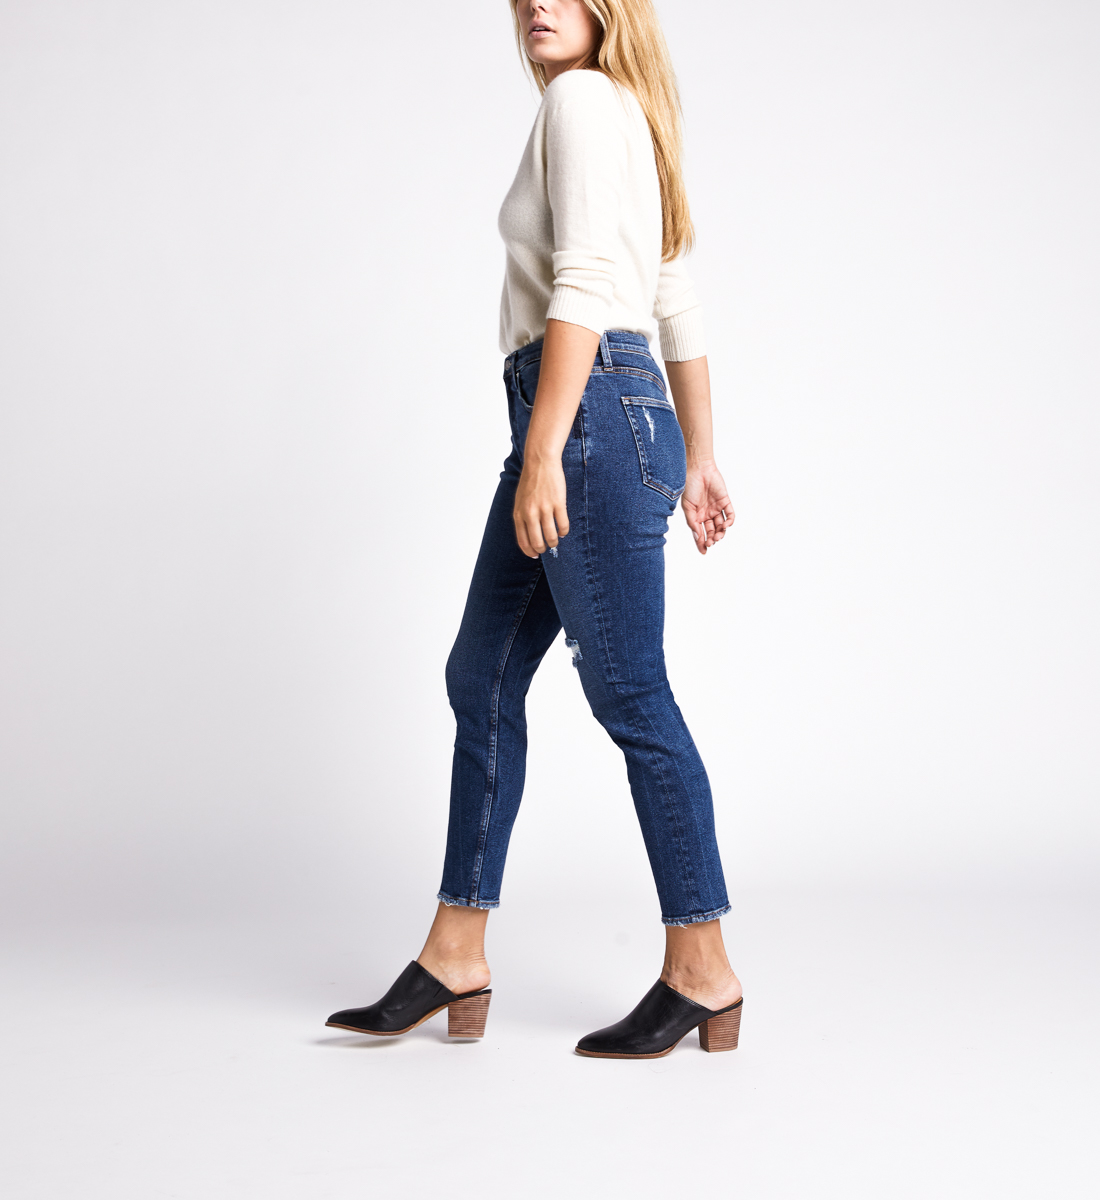 Frisco High Rise Skinny Leg Jeans,Indigo Side